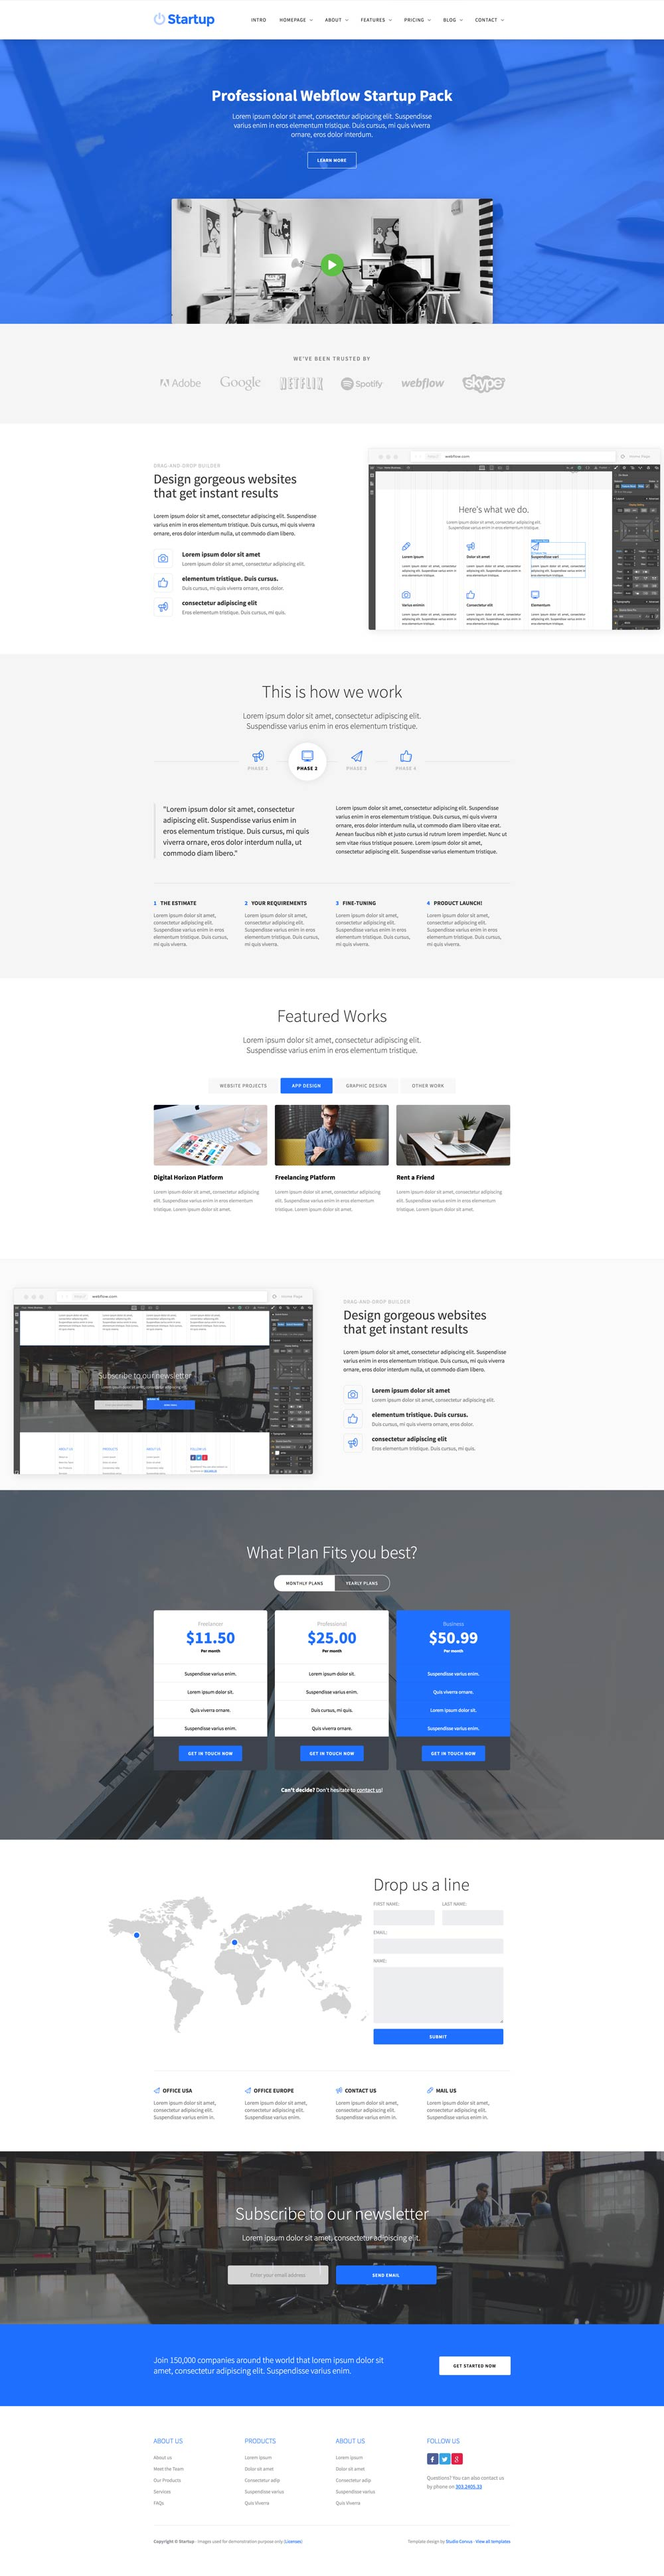 how to tell if website is webflow template